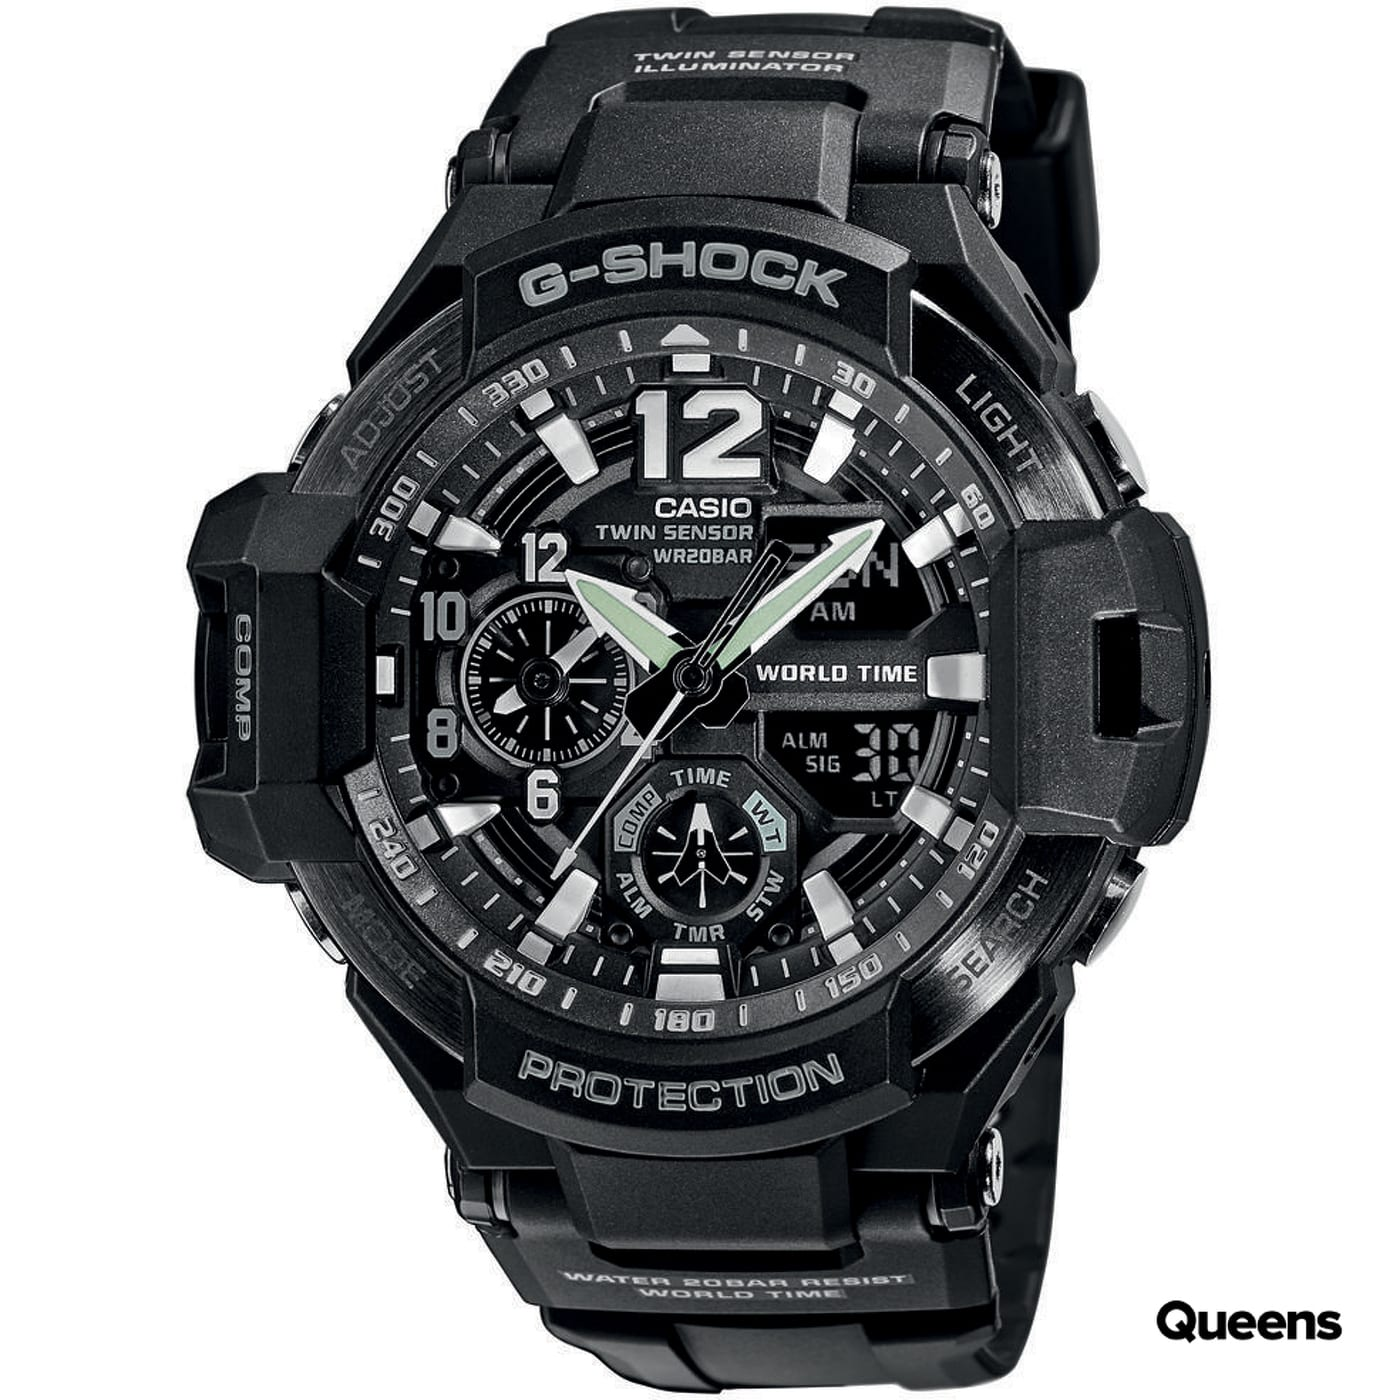 Casio G-Shock GA 1100-1AER black